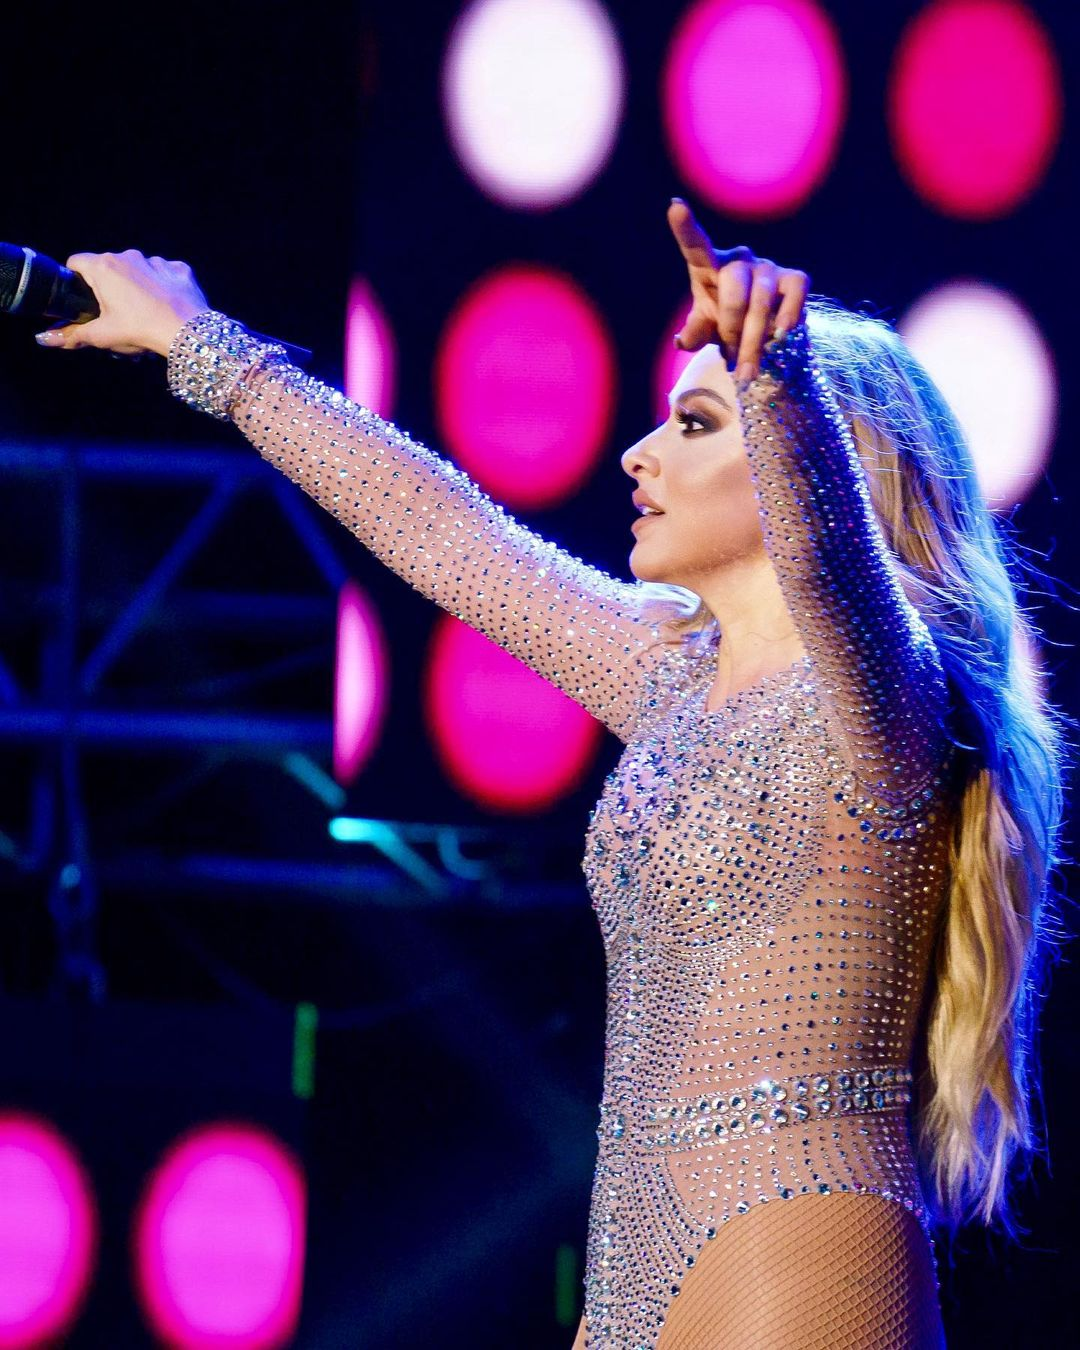 Singer and Model Shown as One of the Sexiest Women in Hadise Country 5